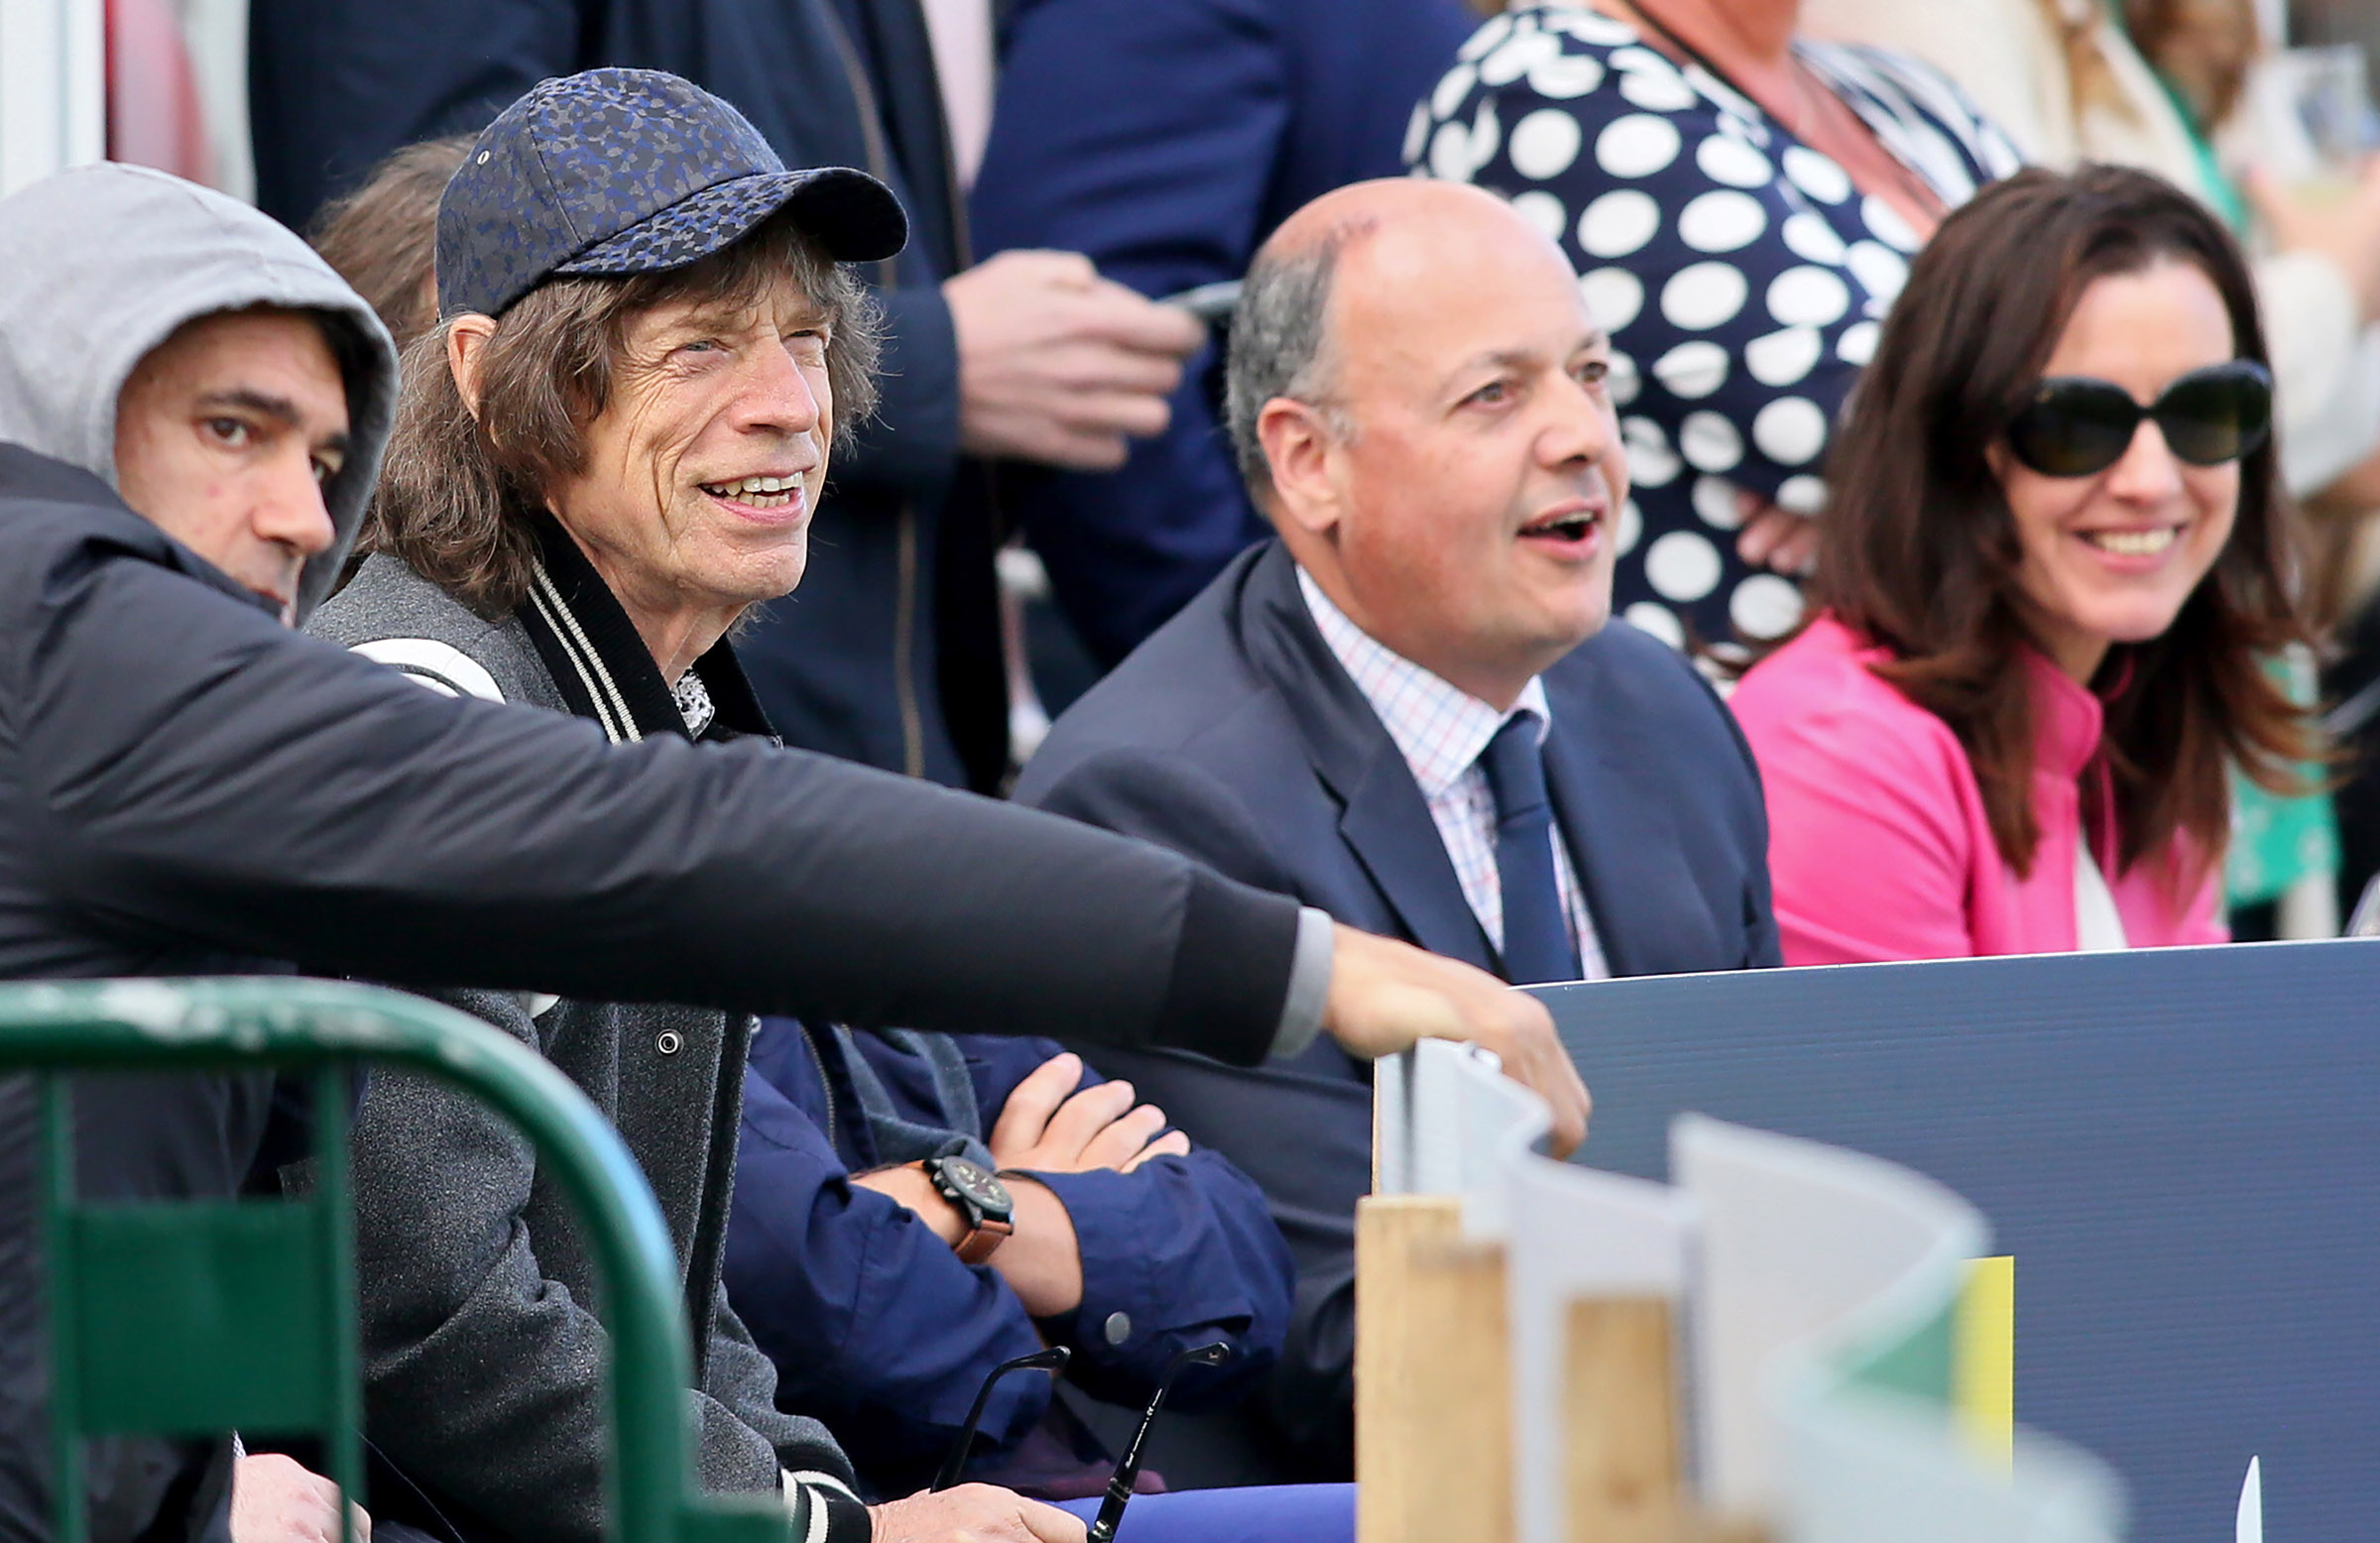 Music icon Mick Jagger in the crowd // Getty